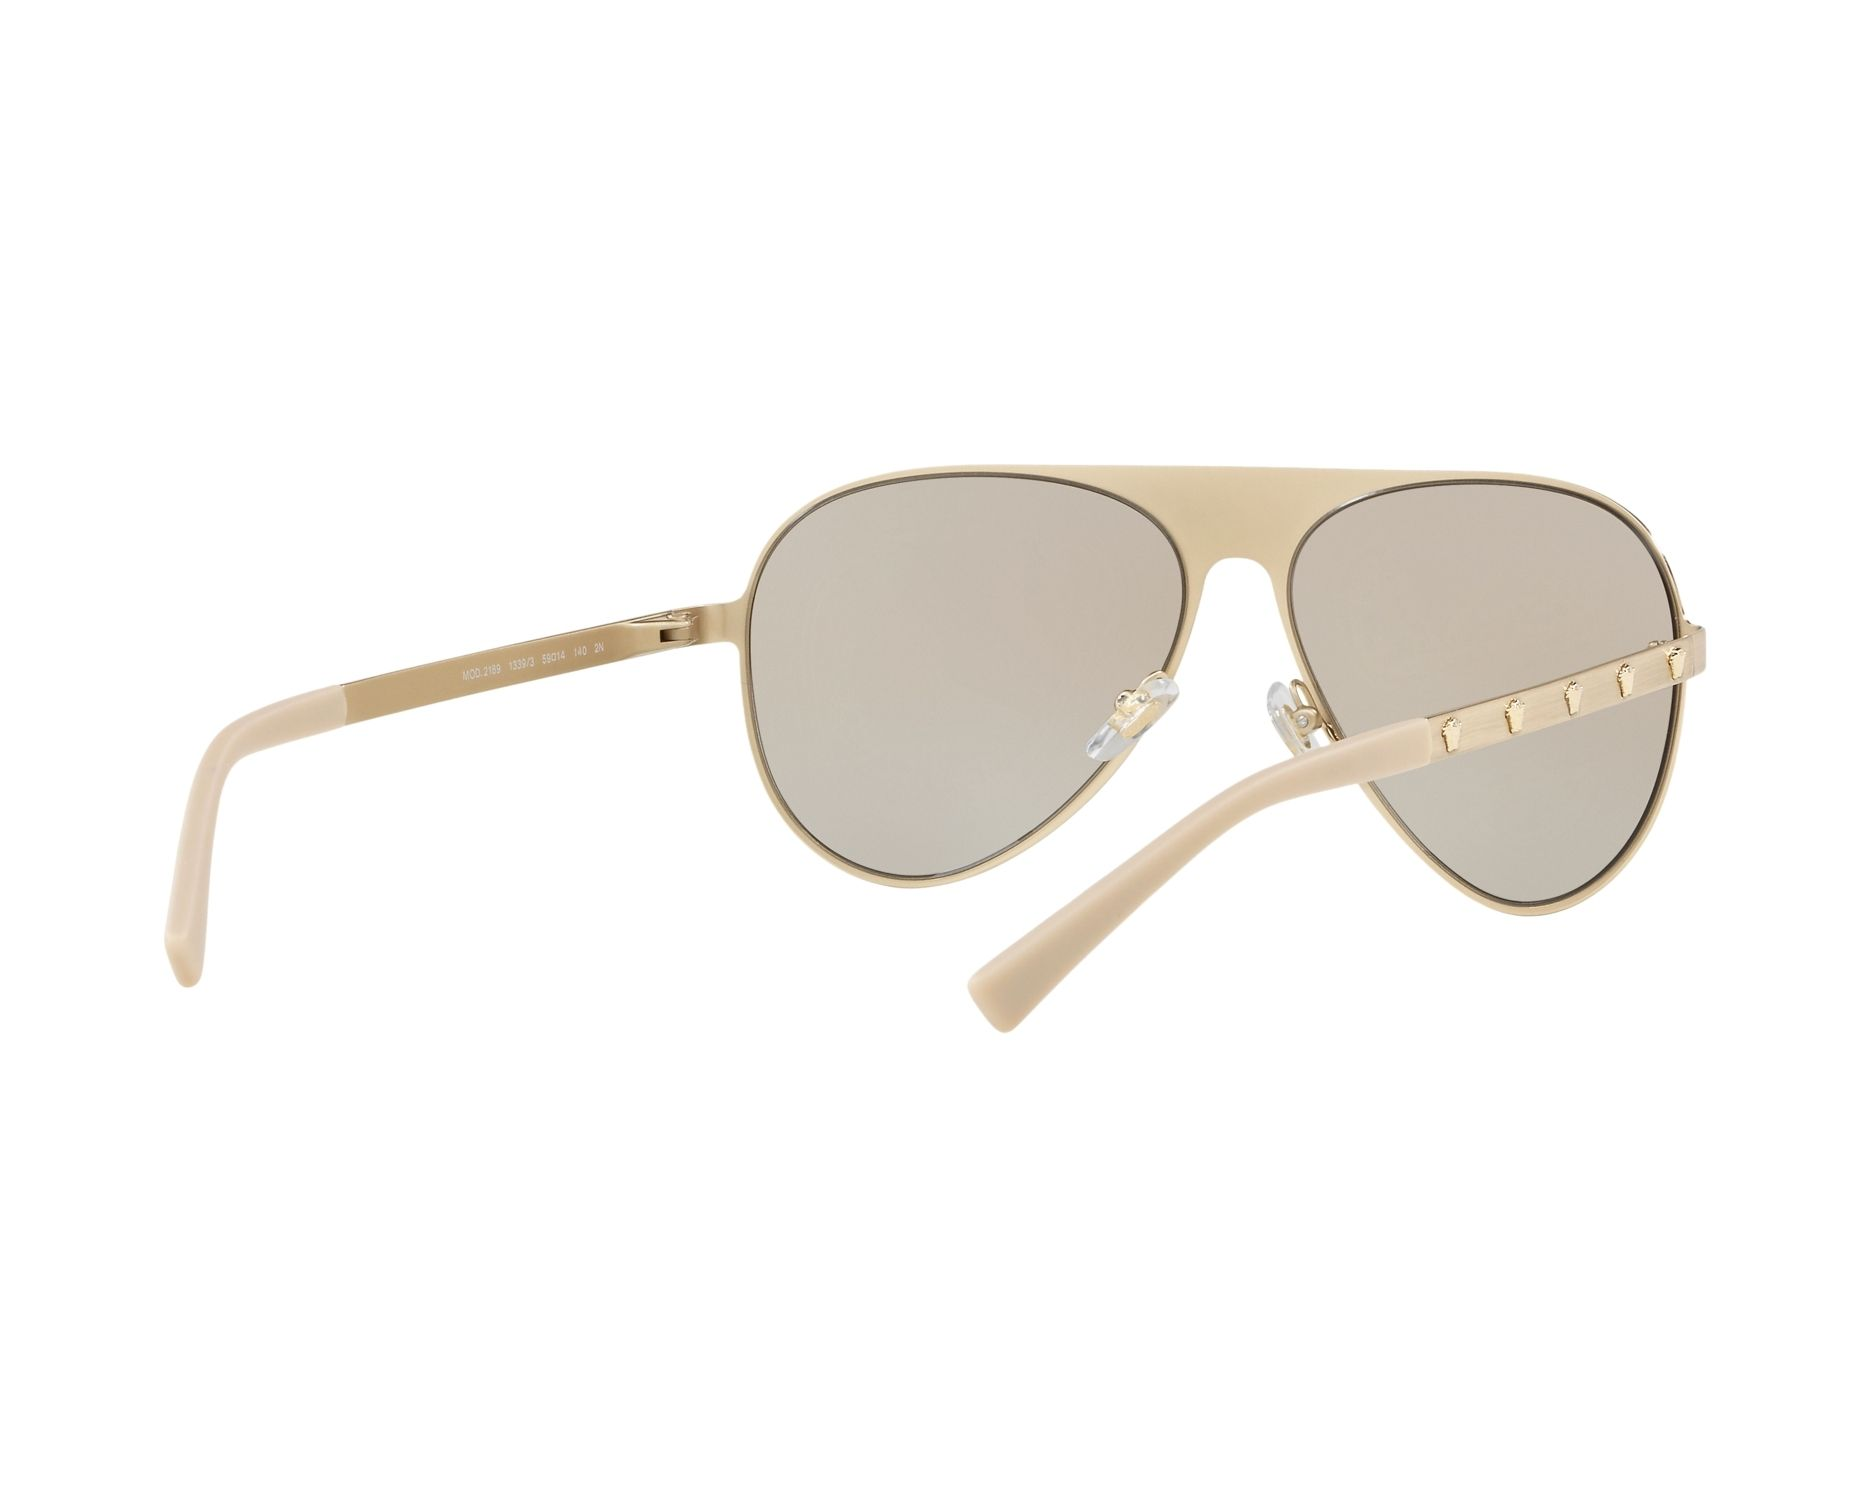 590d0e05acf2 Sunglasses Versace VE-2189 1339 3 59-14 Gold 360 degree view 8